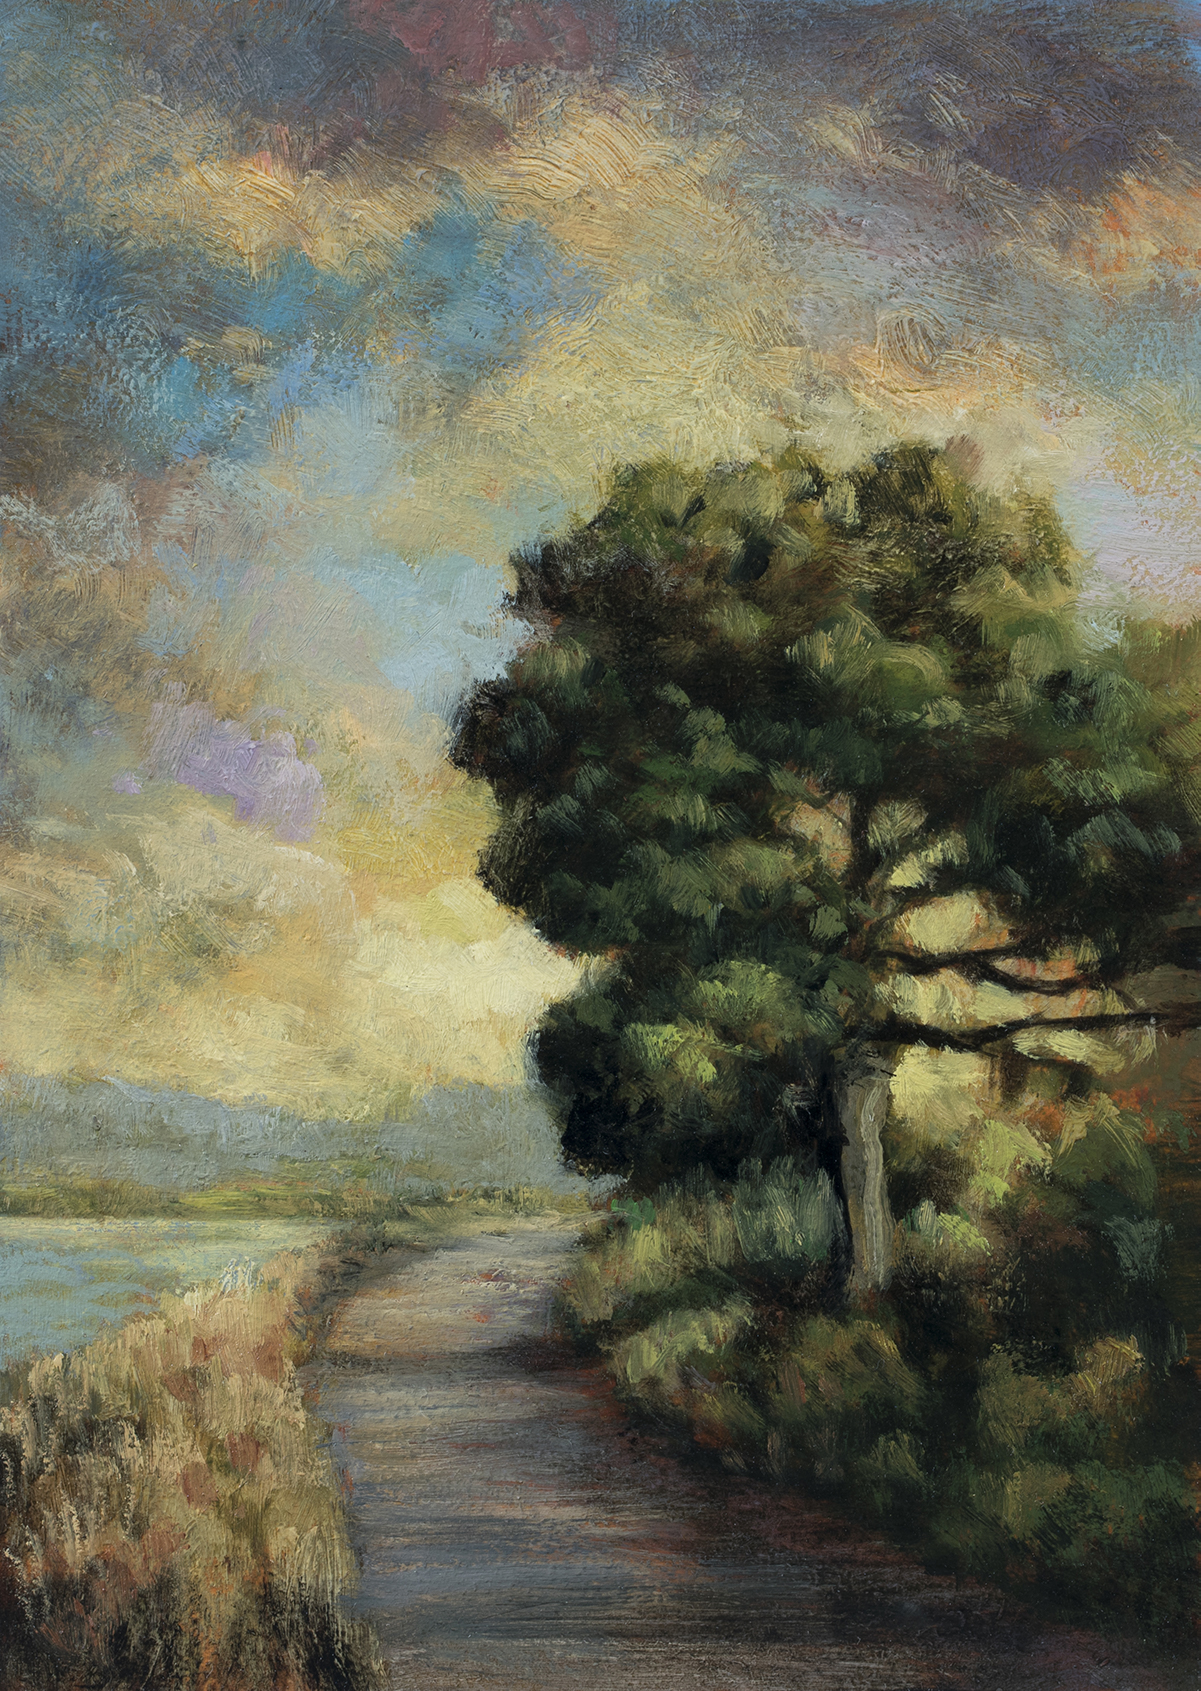 Lake Path by M Francis McCarthy - 5x7 Oil on Wood Panel